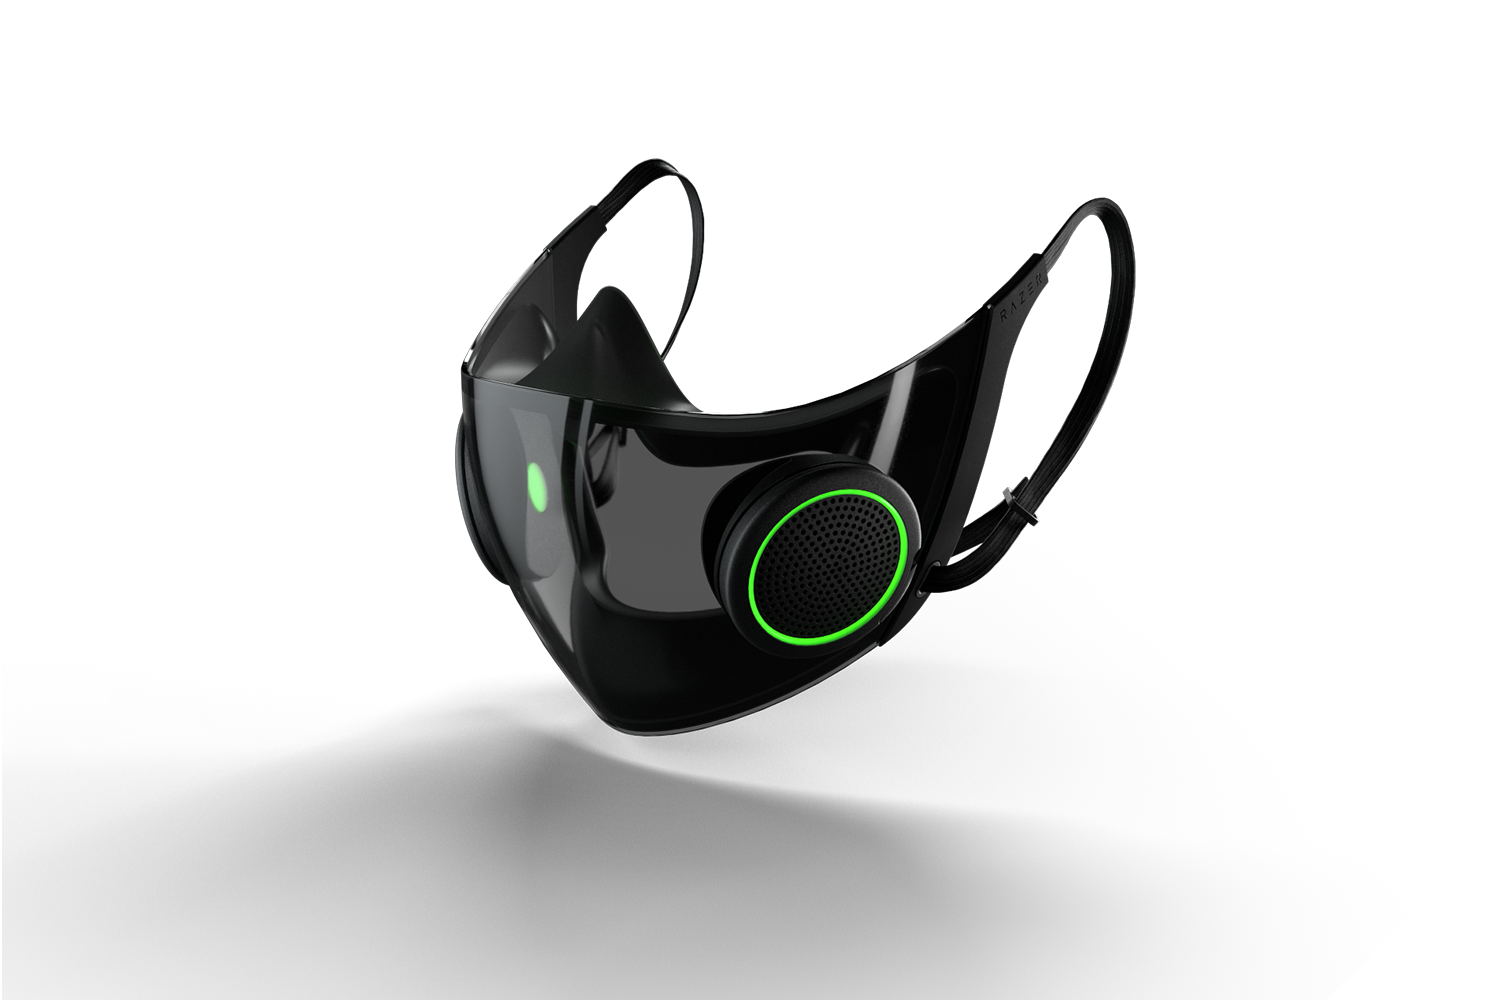 Razer reveals Project Hazel smart mask